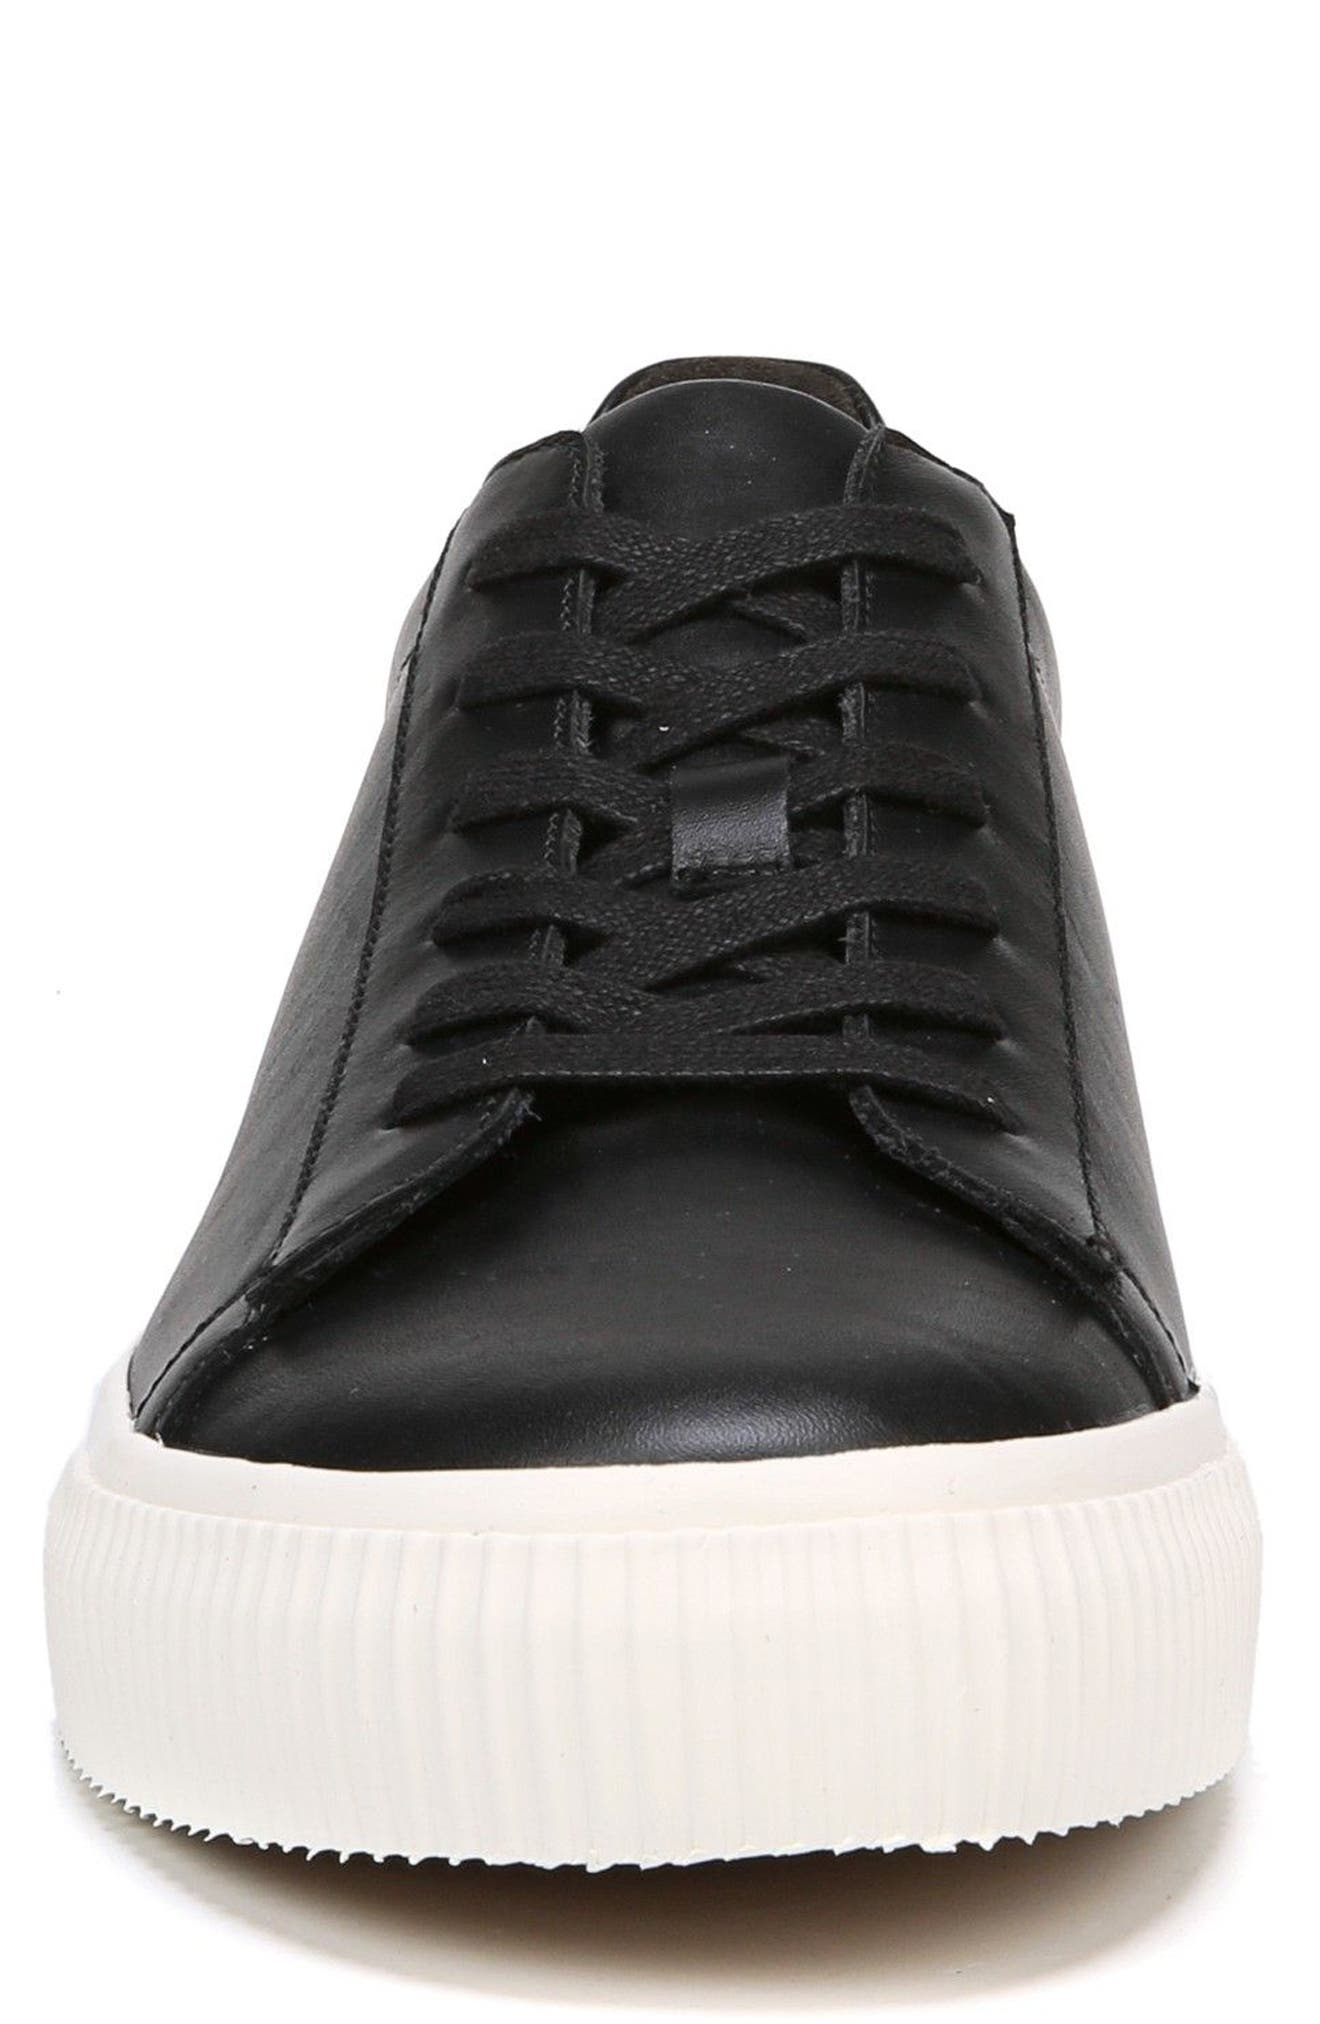 Kurtis Low Top Sneaker,                             Alternate thumbnail 4, color,                             001